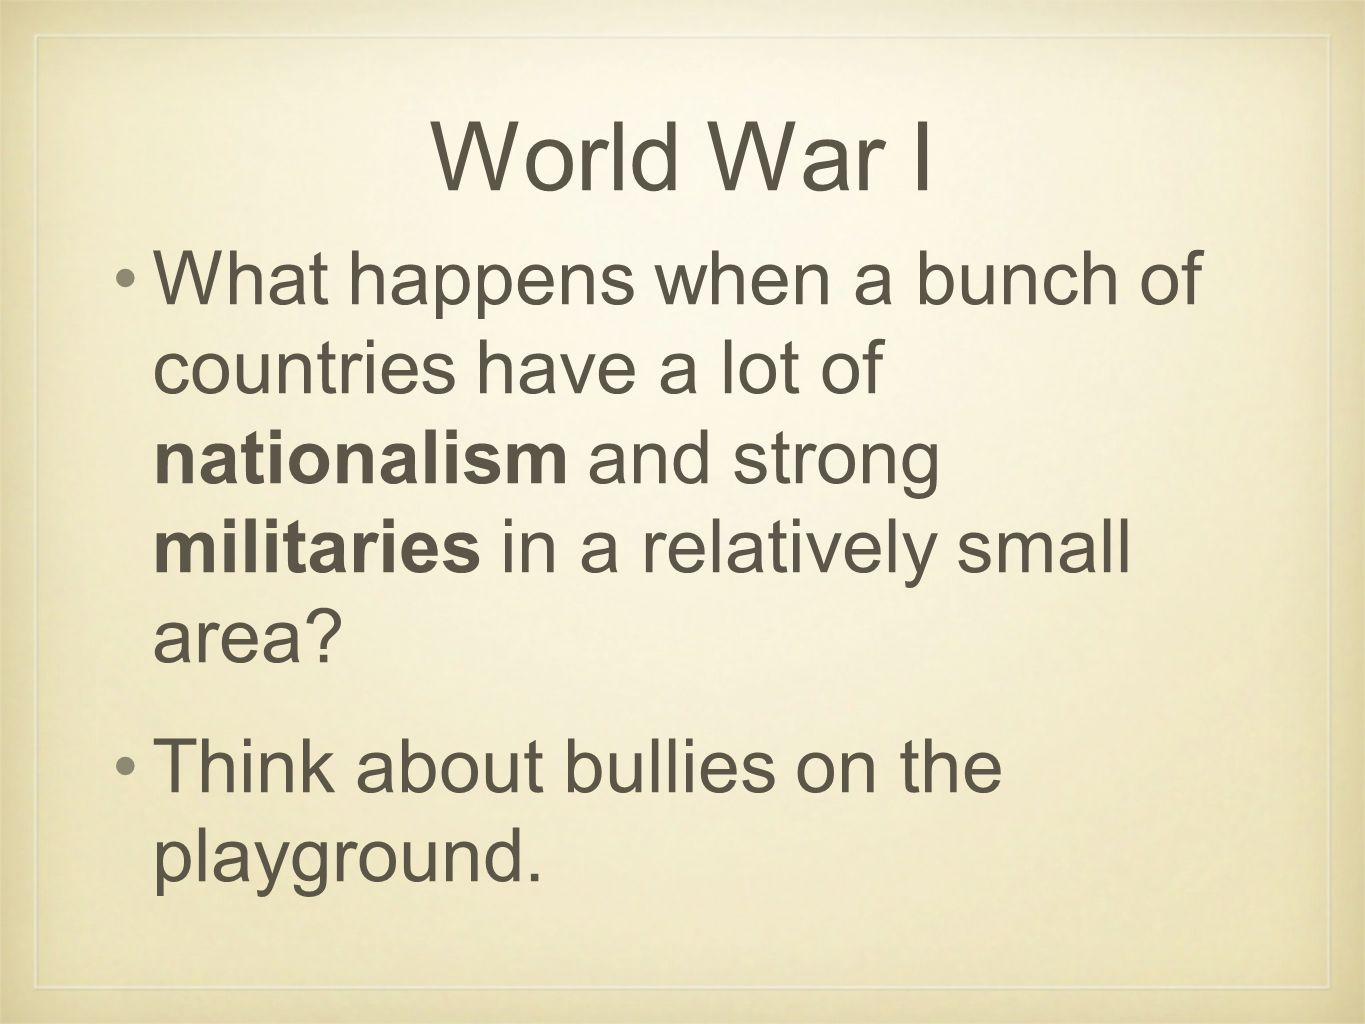 World War I What happens when a bunch of countries have a lot of nationalism and strong militaries in a relatively small area? Think about bullies on